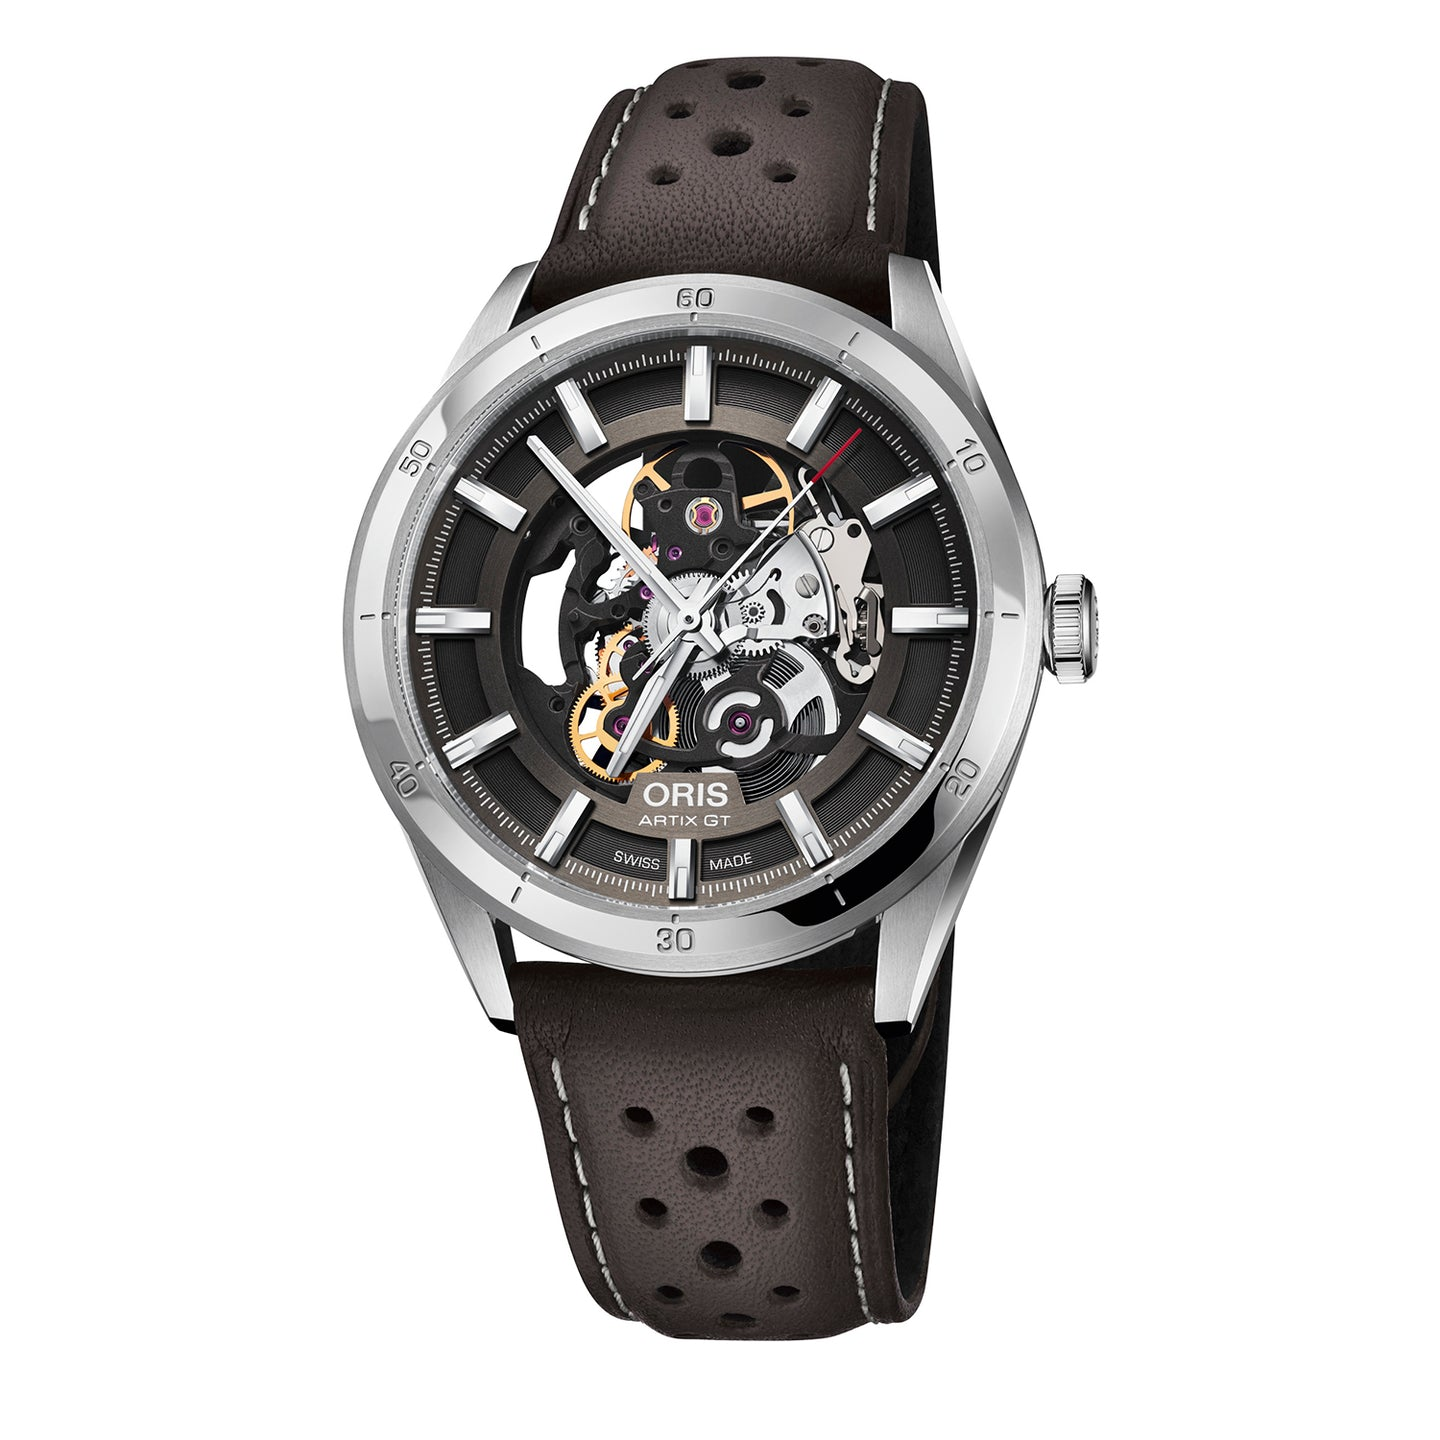 Oris Artix GT Skeleton Watch with Skeleton Dial and Brown Leather Strap